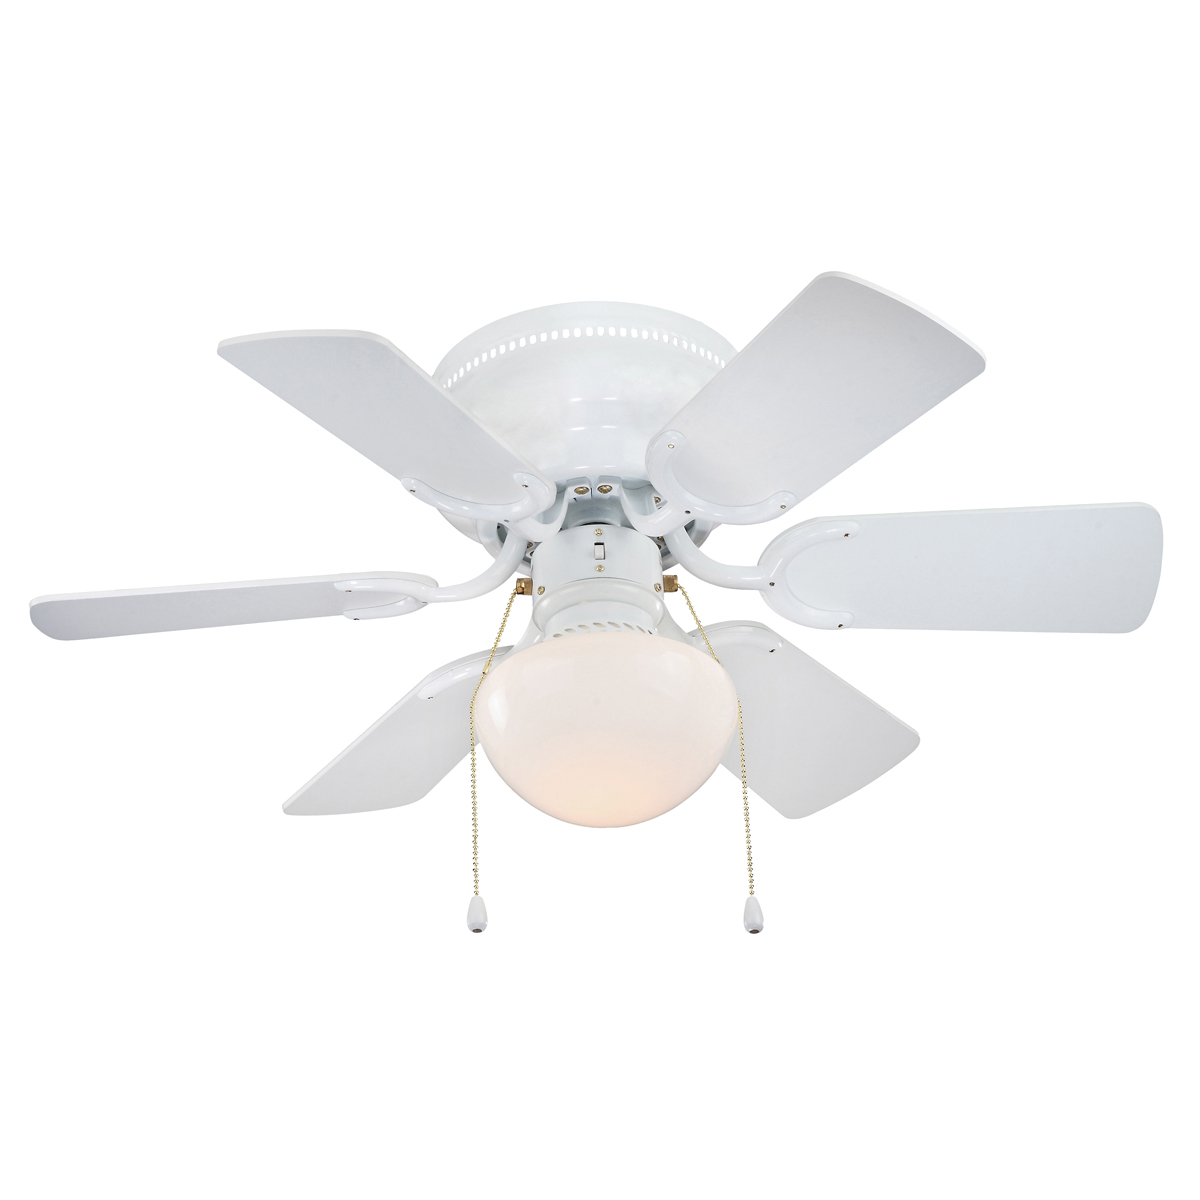 Picture of Boston Harbor CF-78108 Ceiling Fan, 6-Blade, 30 in Sweep, White Housing